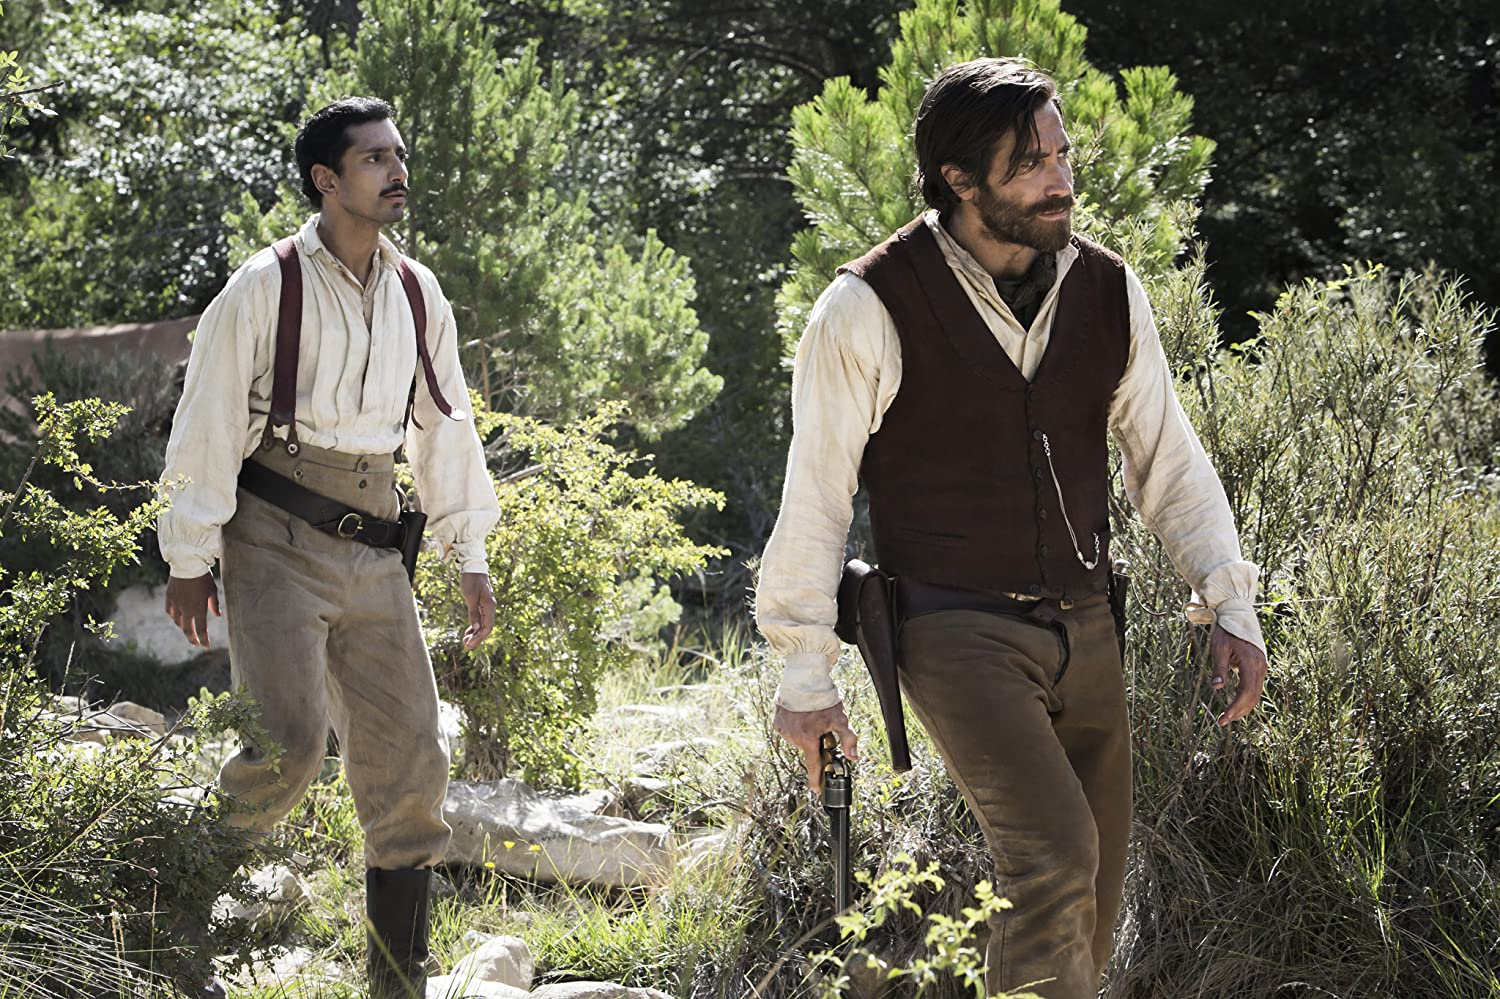 Jake Gyllenhaal and Riz Ahmed in The Sisters Brothers (2018)